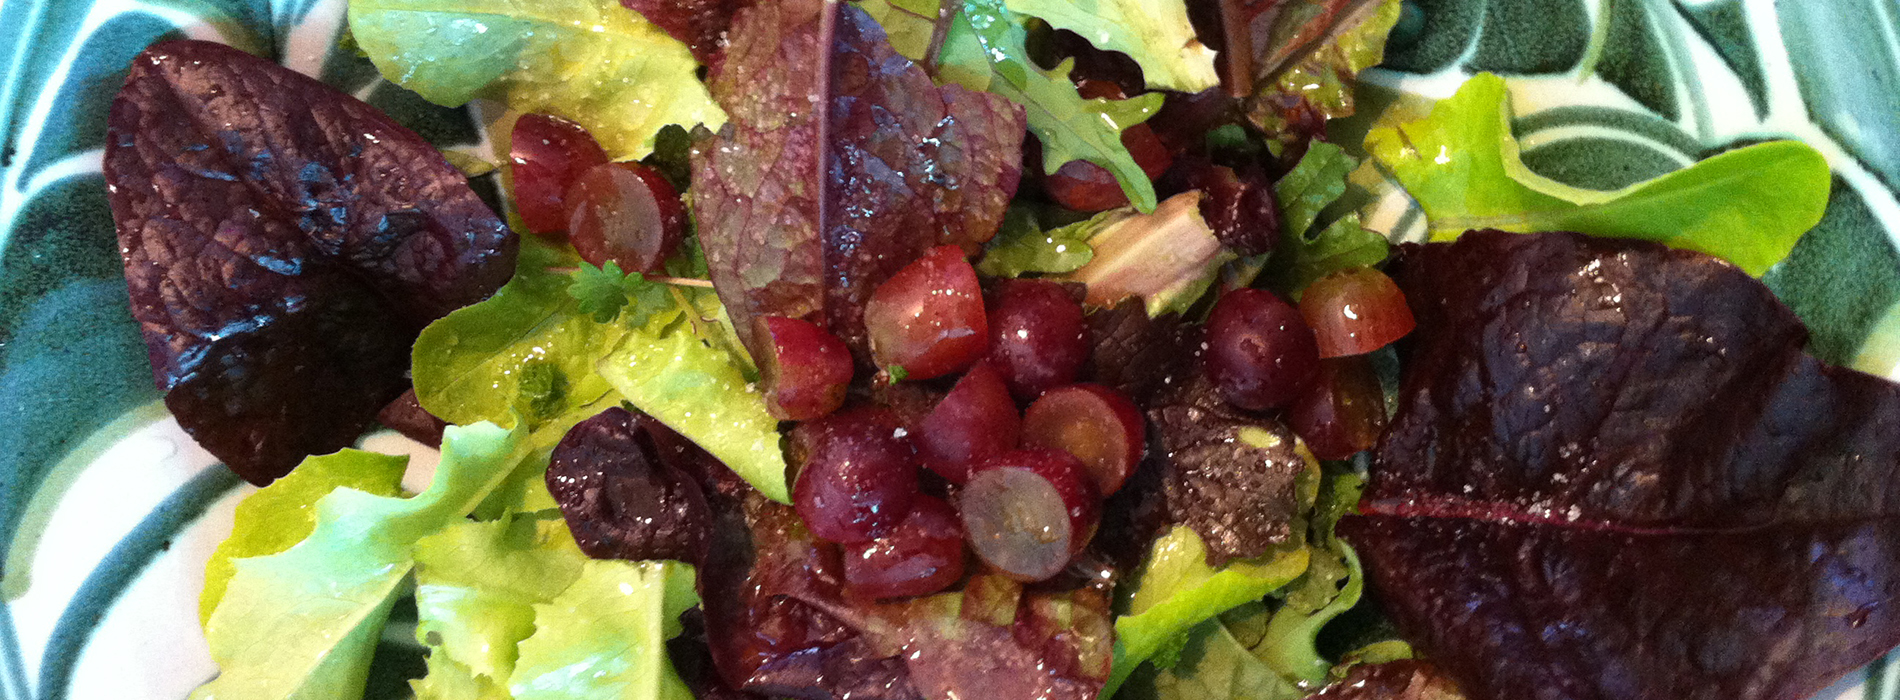 A nice fresh mixed leaf salad with red grapes.